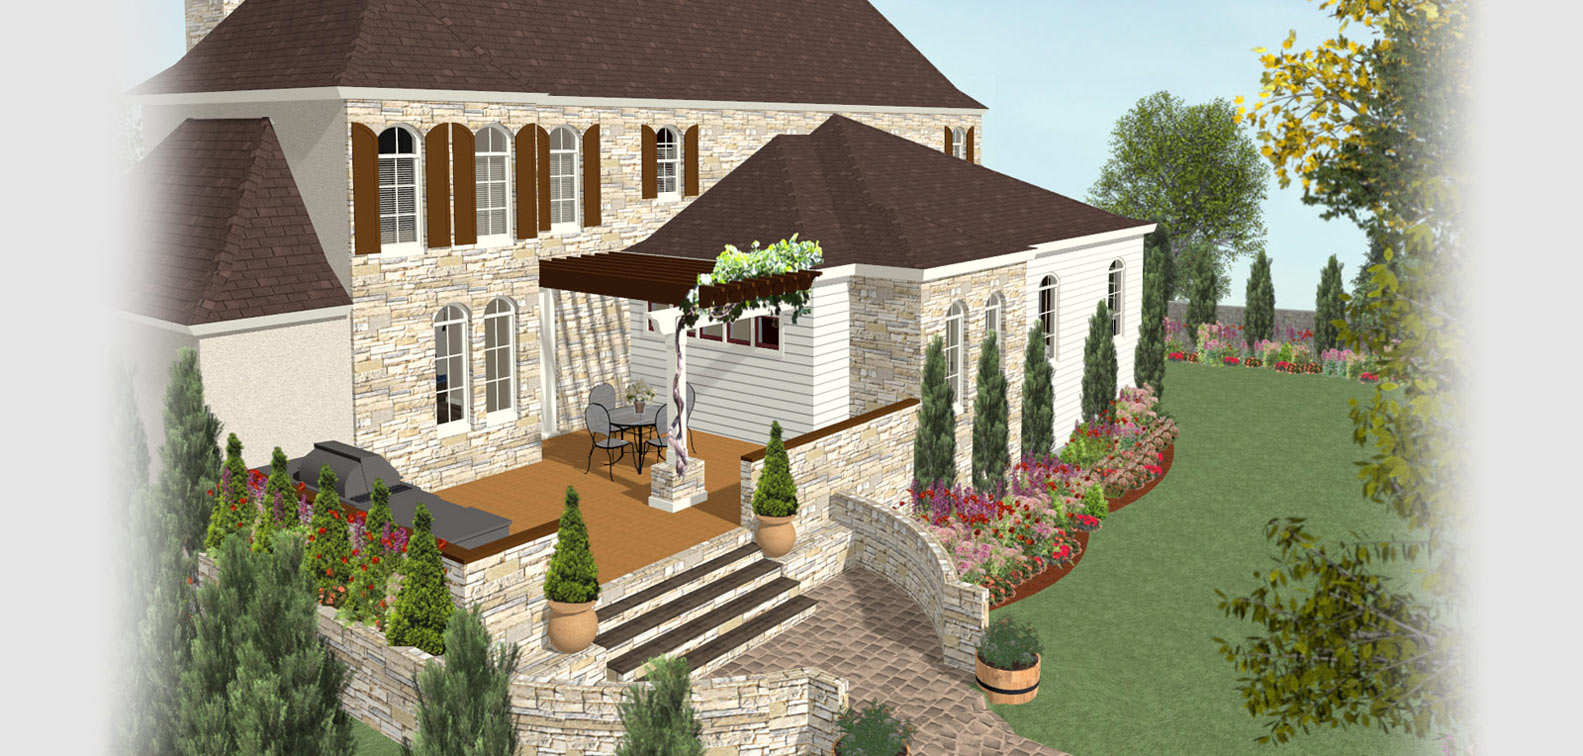 Home Garden Design Software Remodelling Amusing Home Designer Software For Deck And Landscape Software Projects Review